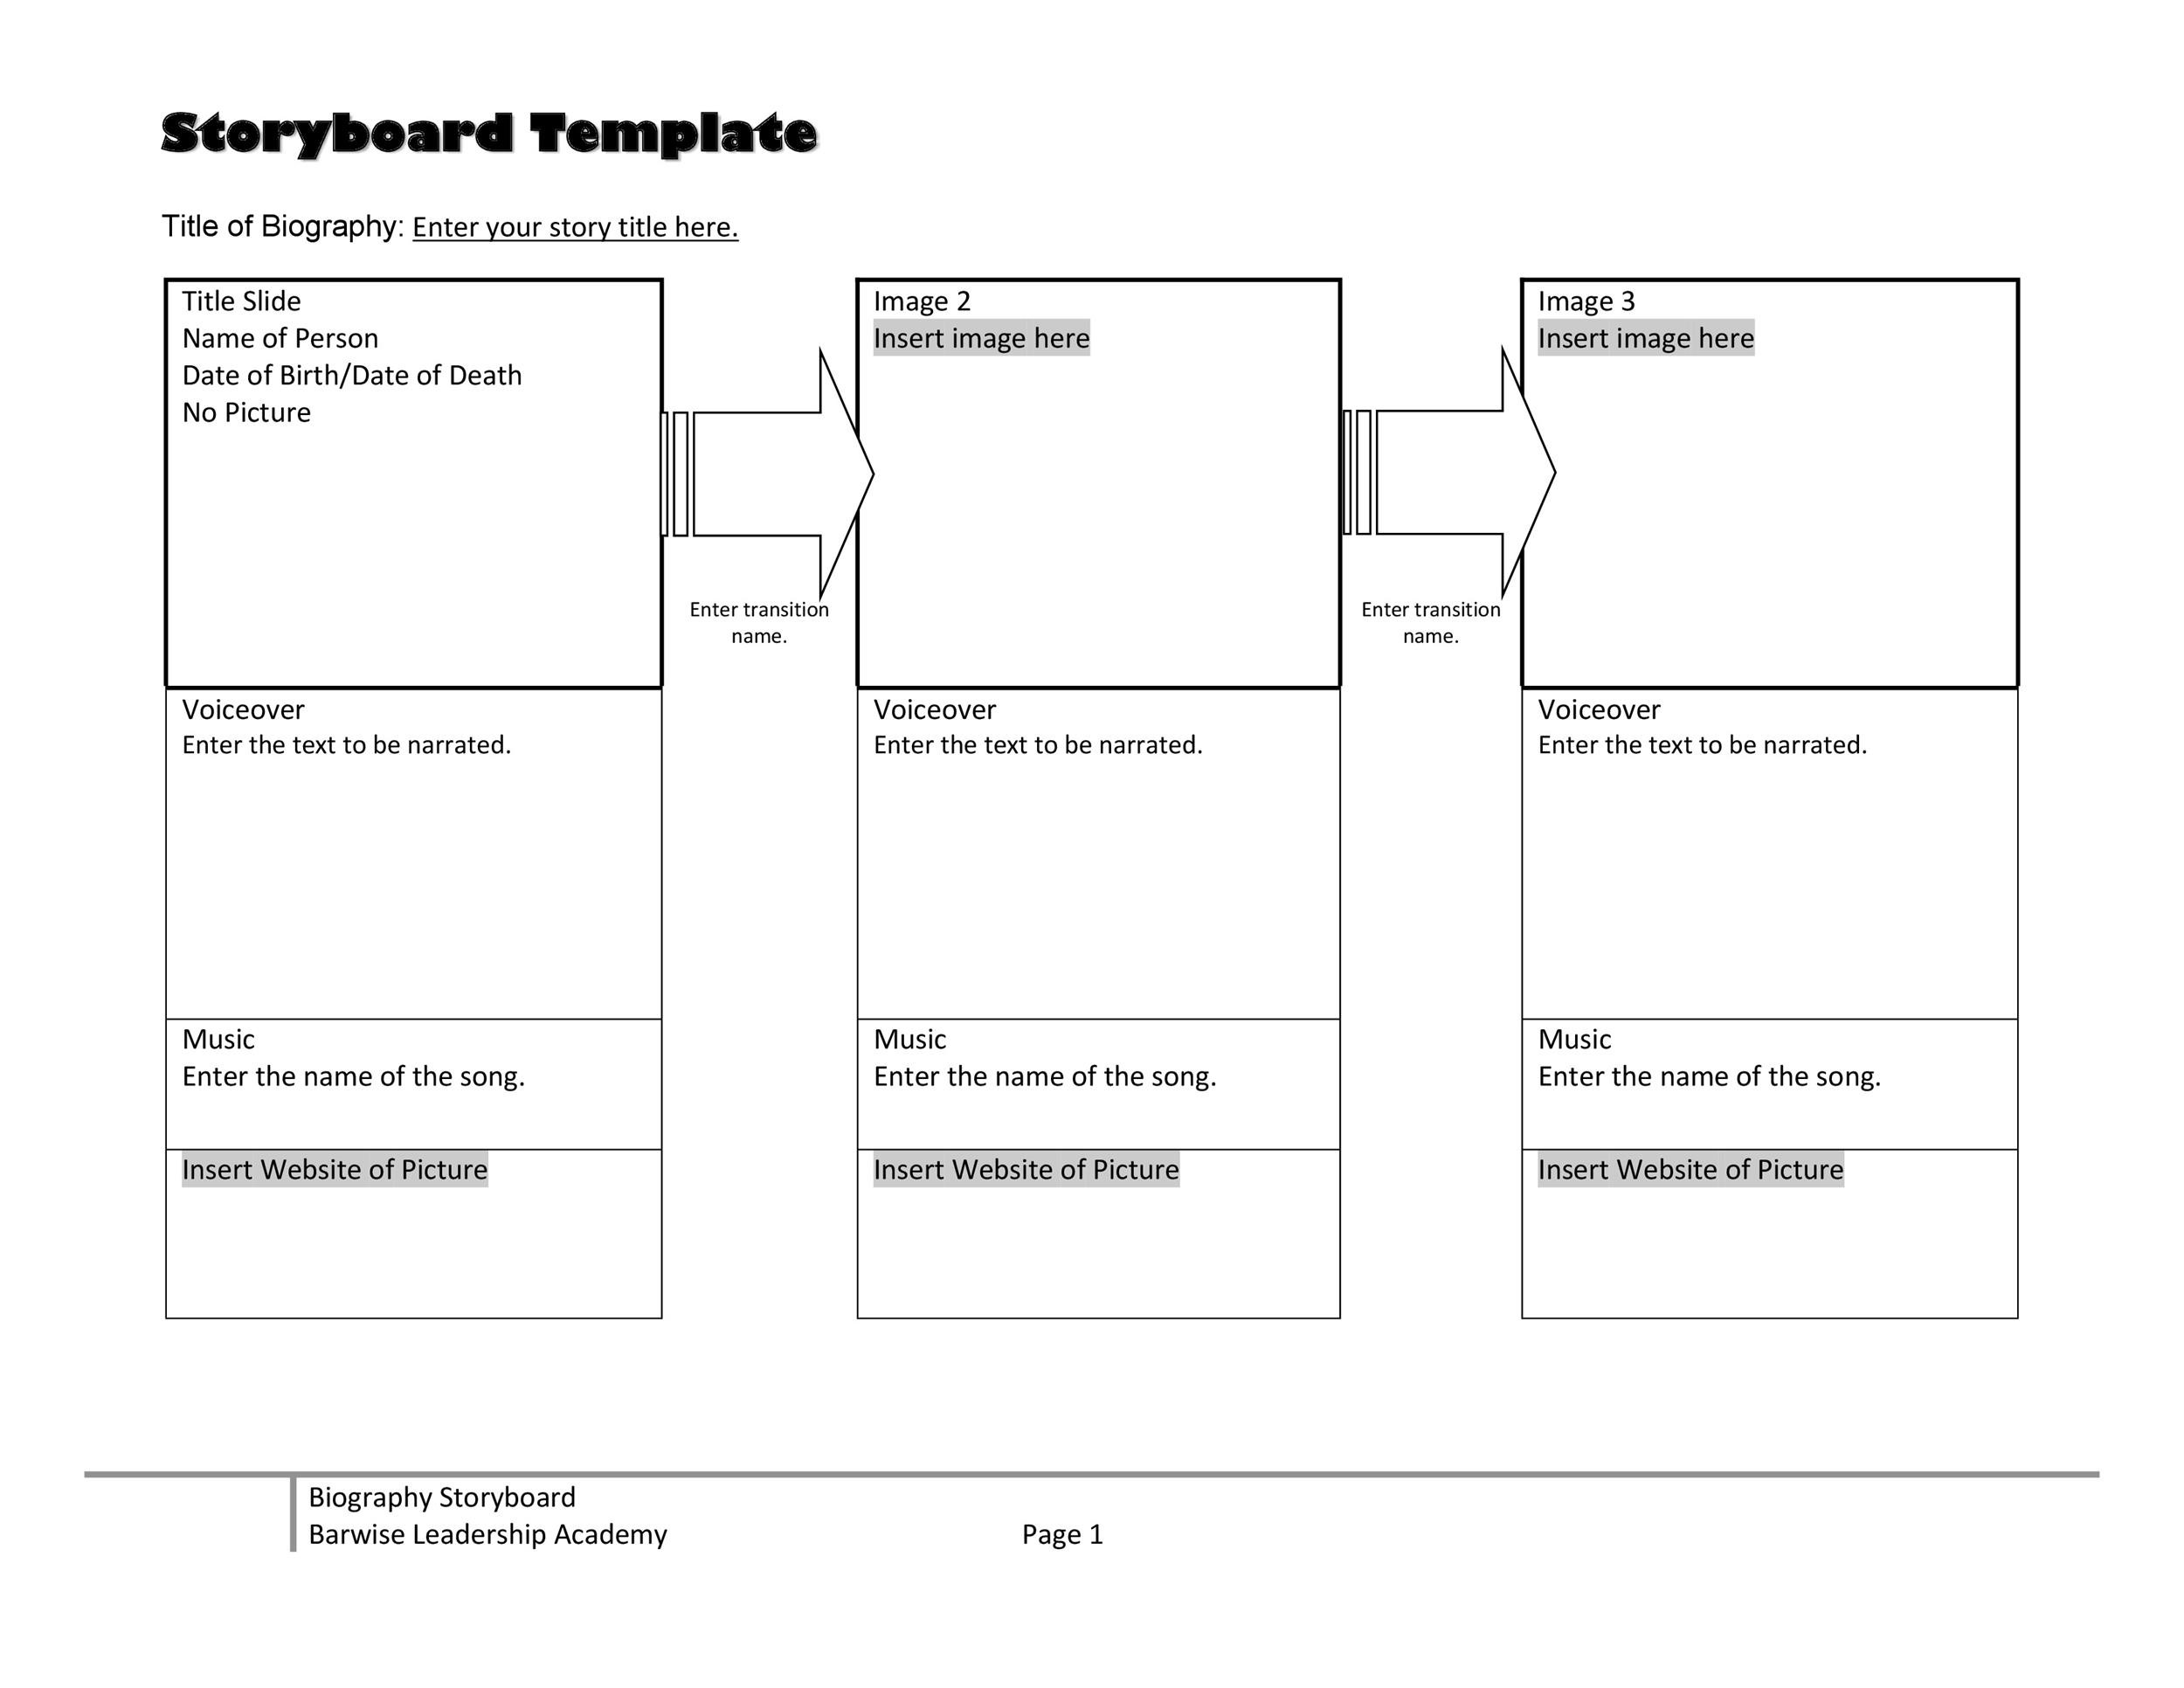 image regarding Storyboard Template Printable named 40 Experienced Storyboard Templates Illustrations